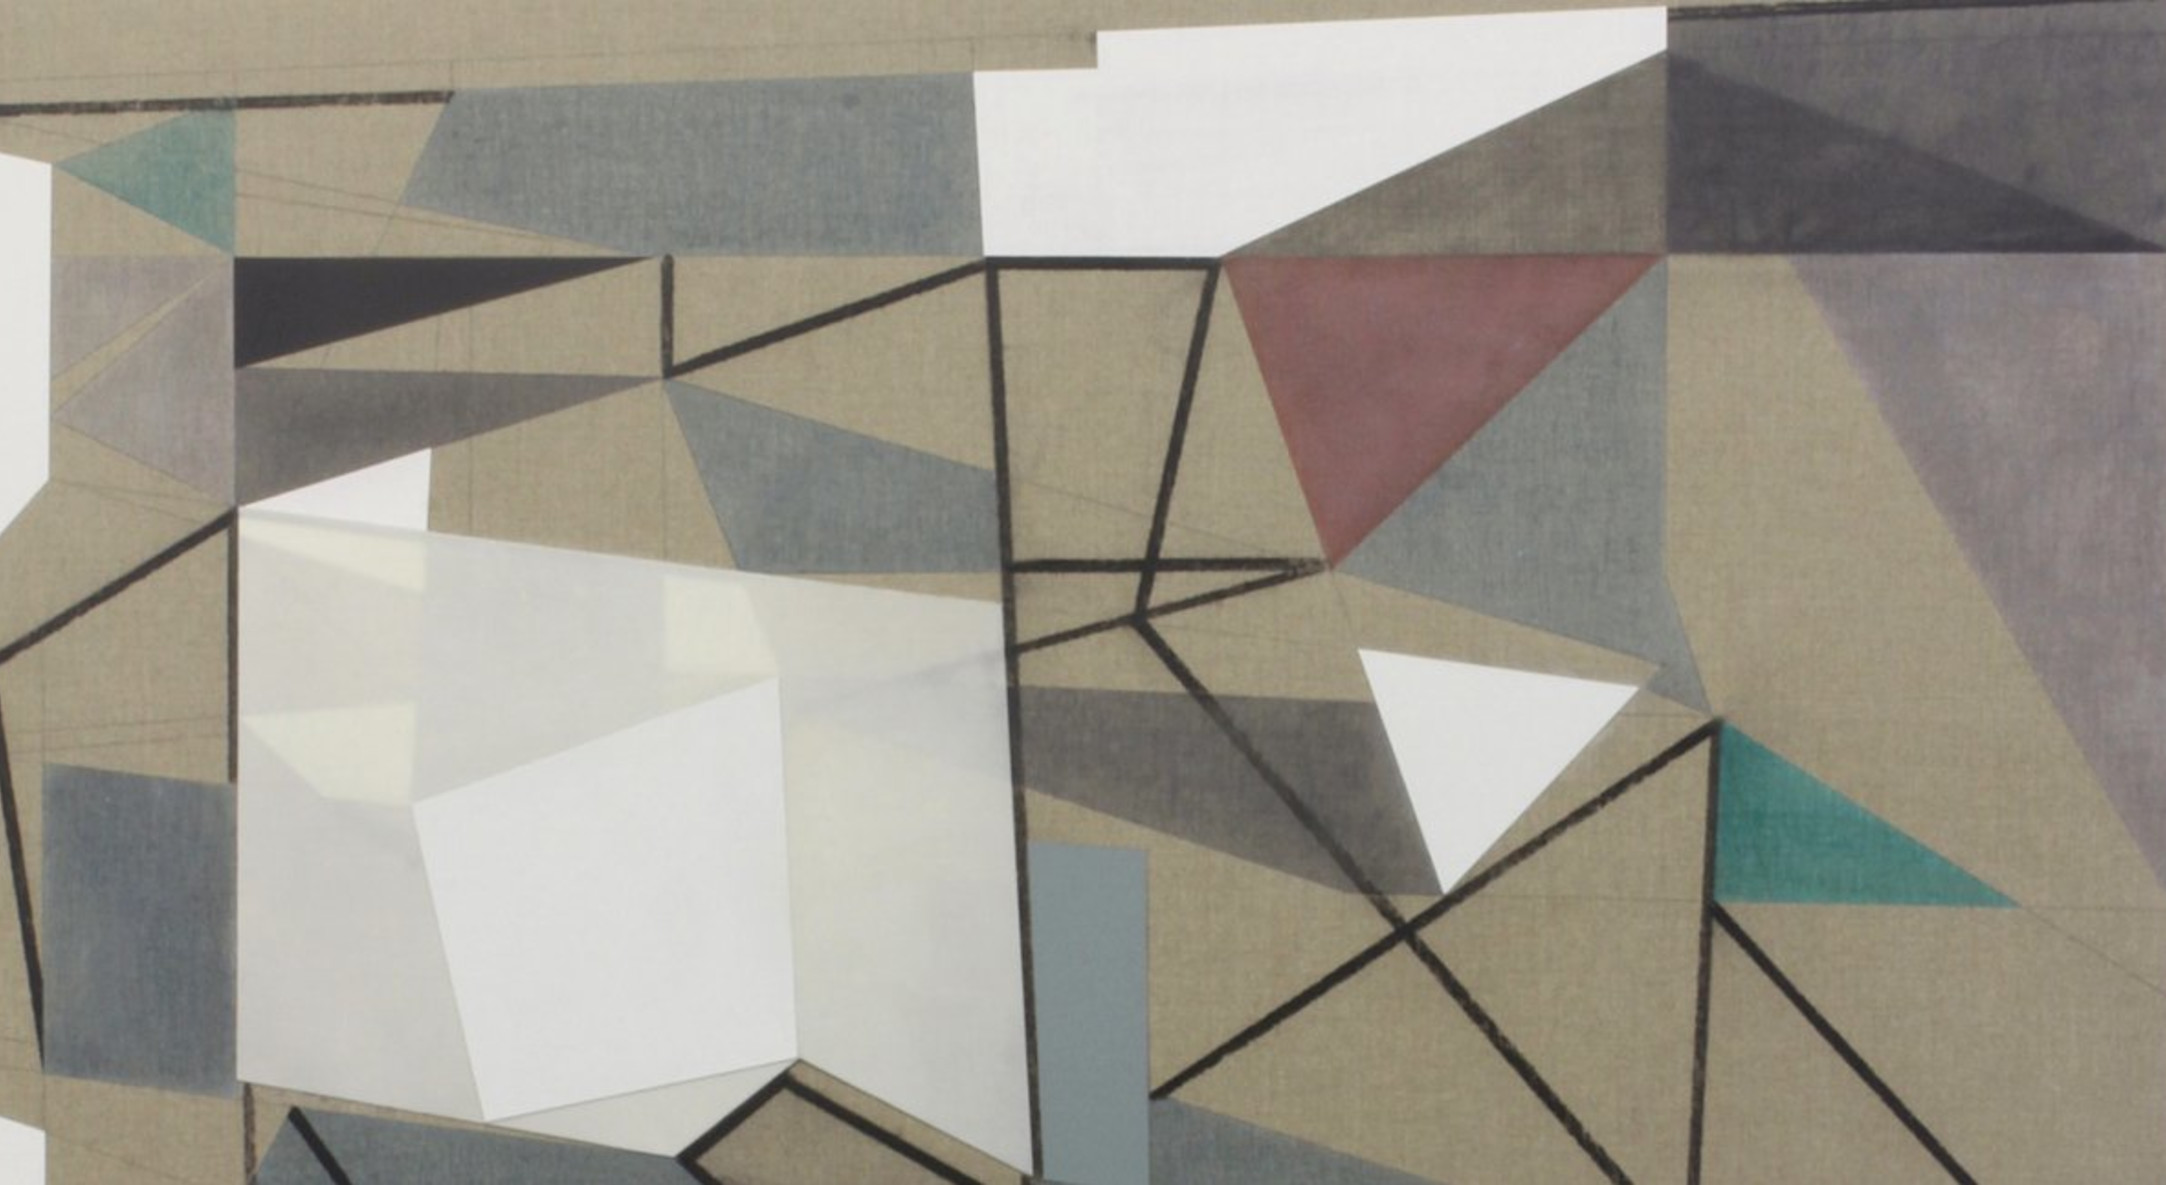 Detail of Andrew Bick, Exit Variant [tilted] A, 2012, Acrylic, charcoal, pencil, oil, and wax on linen on wood, 138 x 122 cm, 54 3/8 x 48 1/8 in